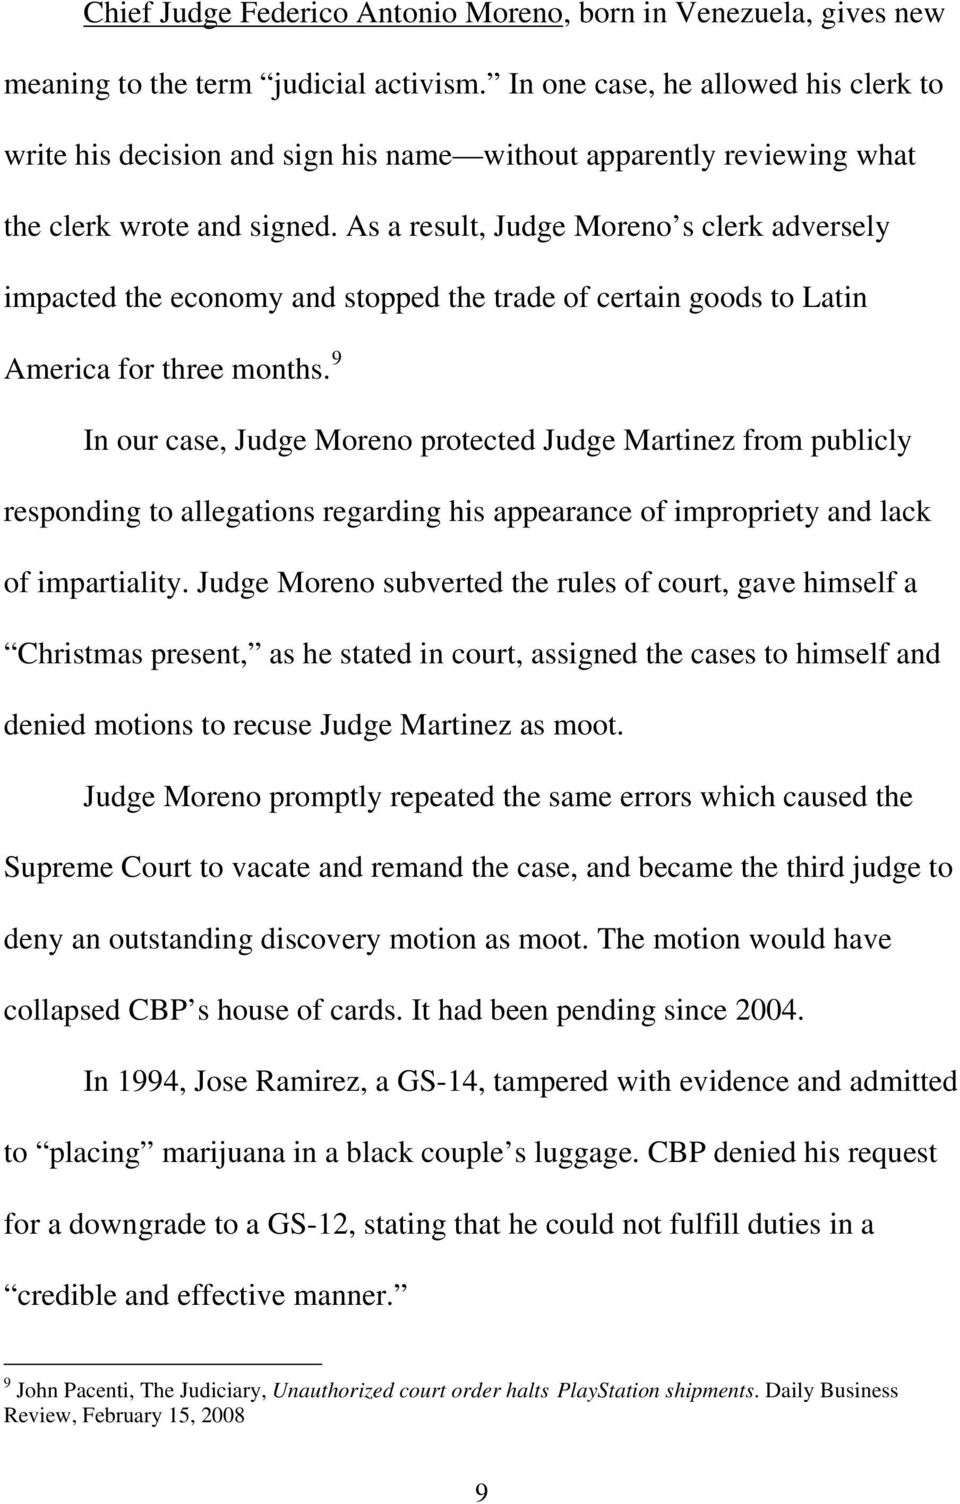 As a result, Judge Moreno s clerk adversely impacted the economy and stopped the trade of certain goods to Latin America for three months.